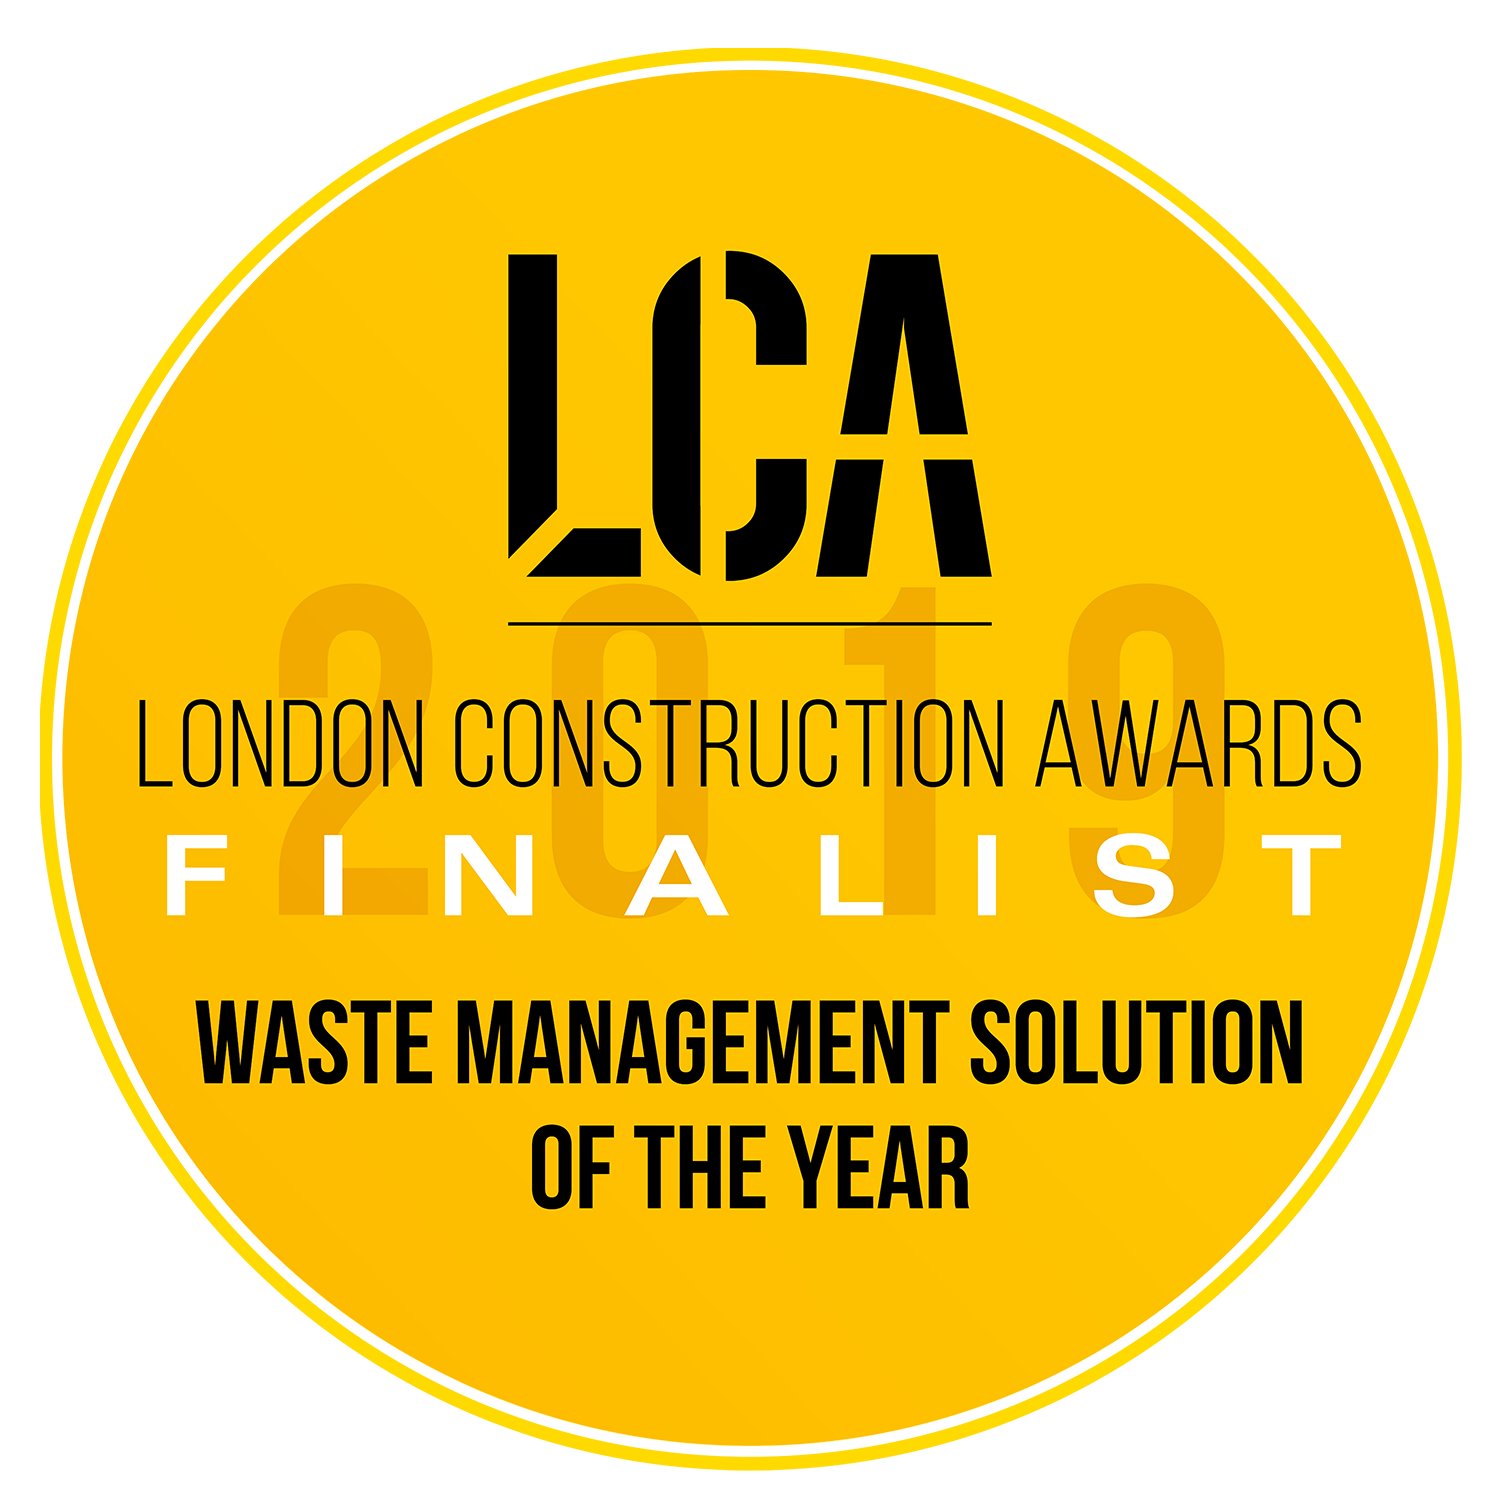 Waste Management Solution of the Year Award - email signature copy.png